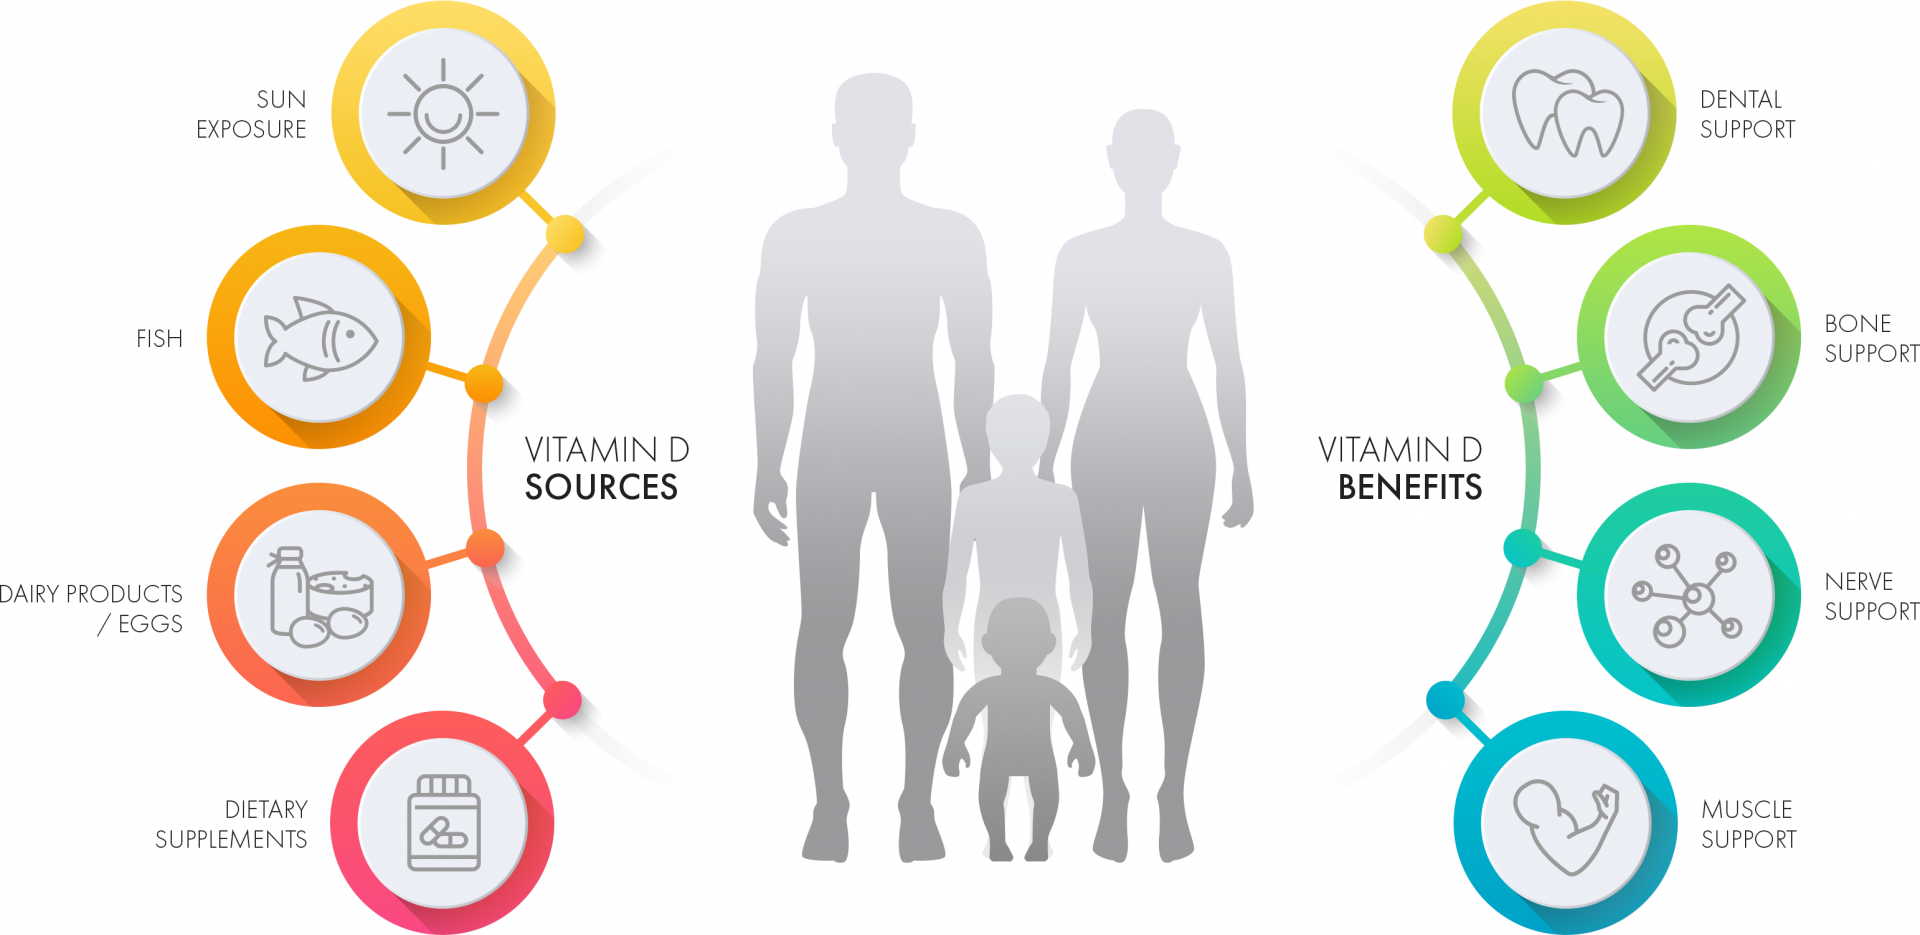 Real Promise Babe D3 Vitamin D Sources and Benefits Infographic